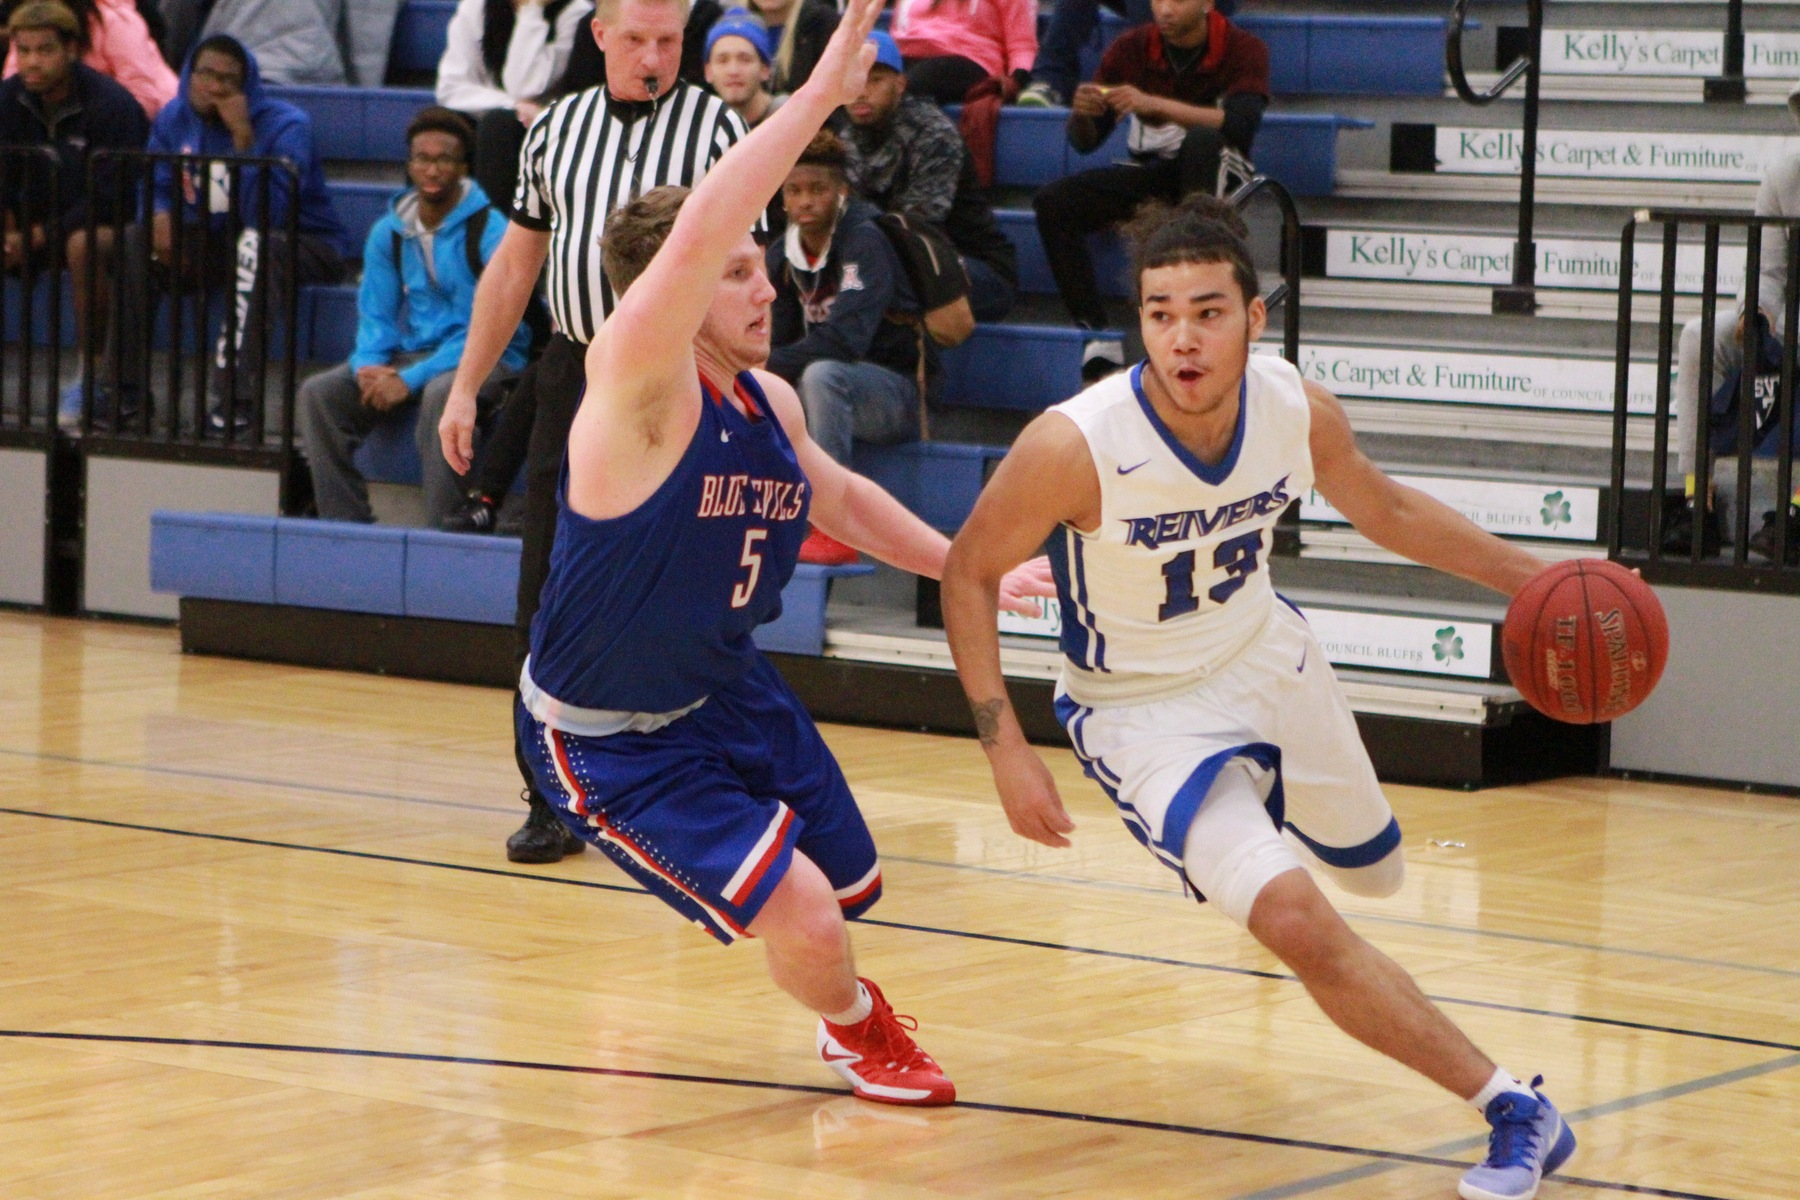 Iowa Western's Pat Dembley and his teammates opened up the 2017-18 season with a 111-85 victory at Kanesville Arena against the visiting Concordia University (NE) JV.